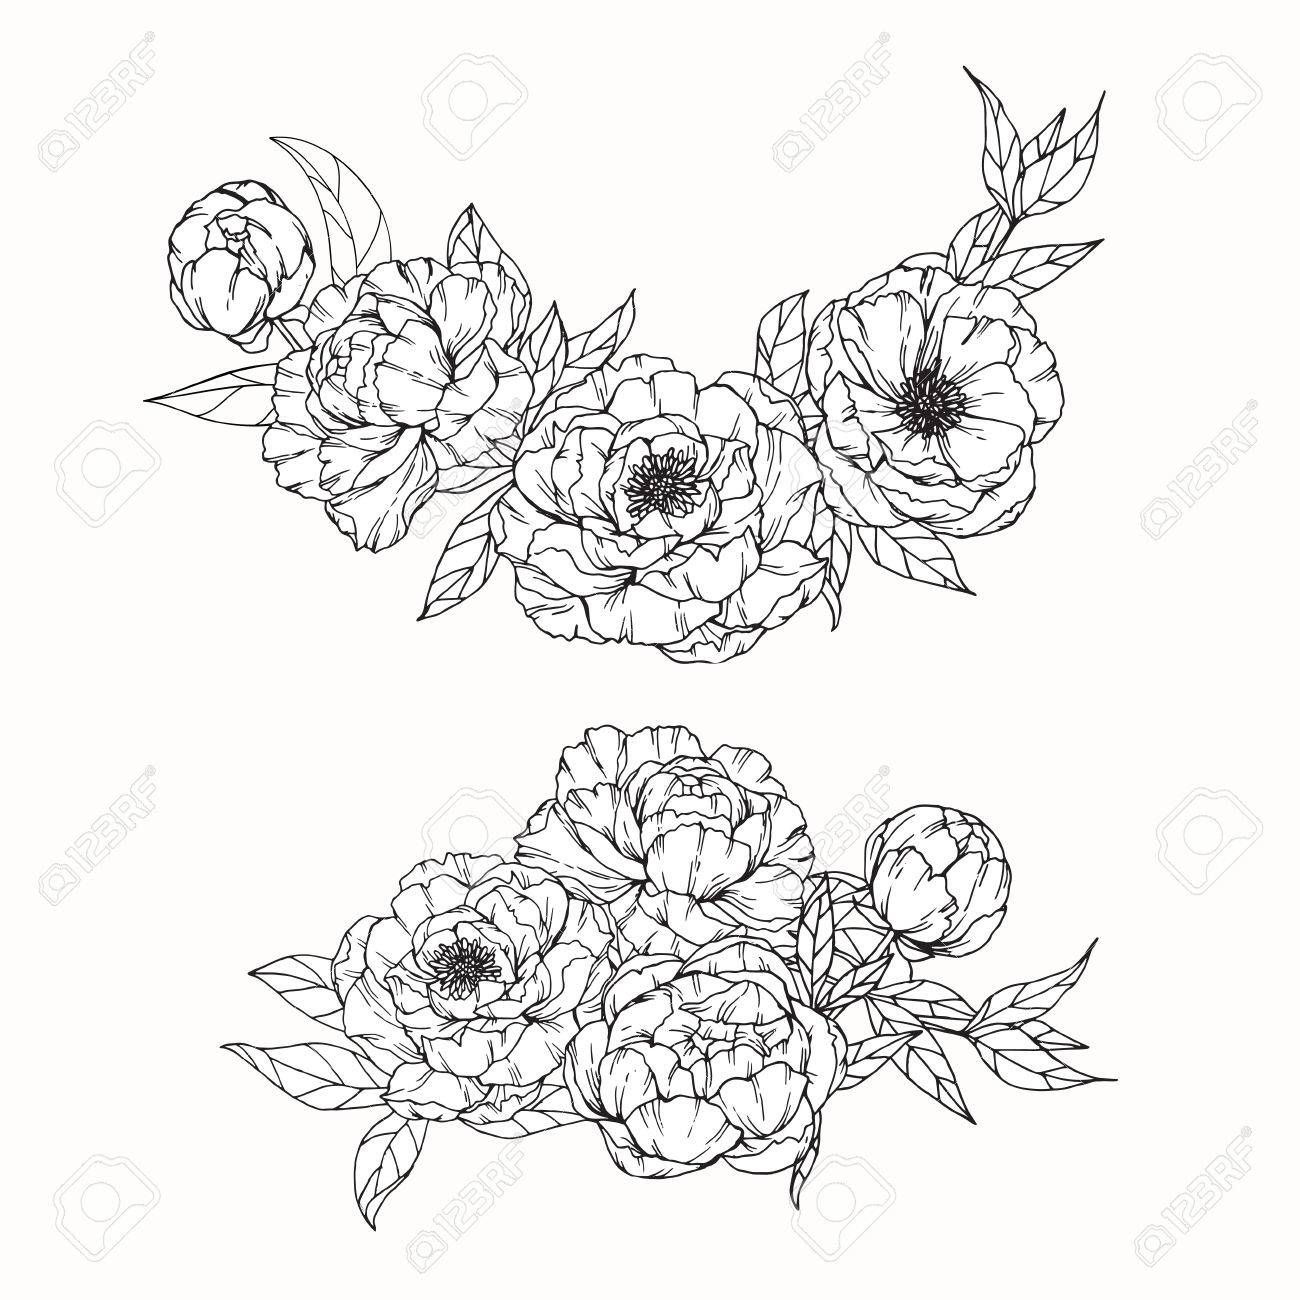 1300x1300 Peony Flowers Drawing And Sketch With Line Art On White